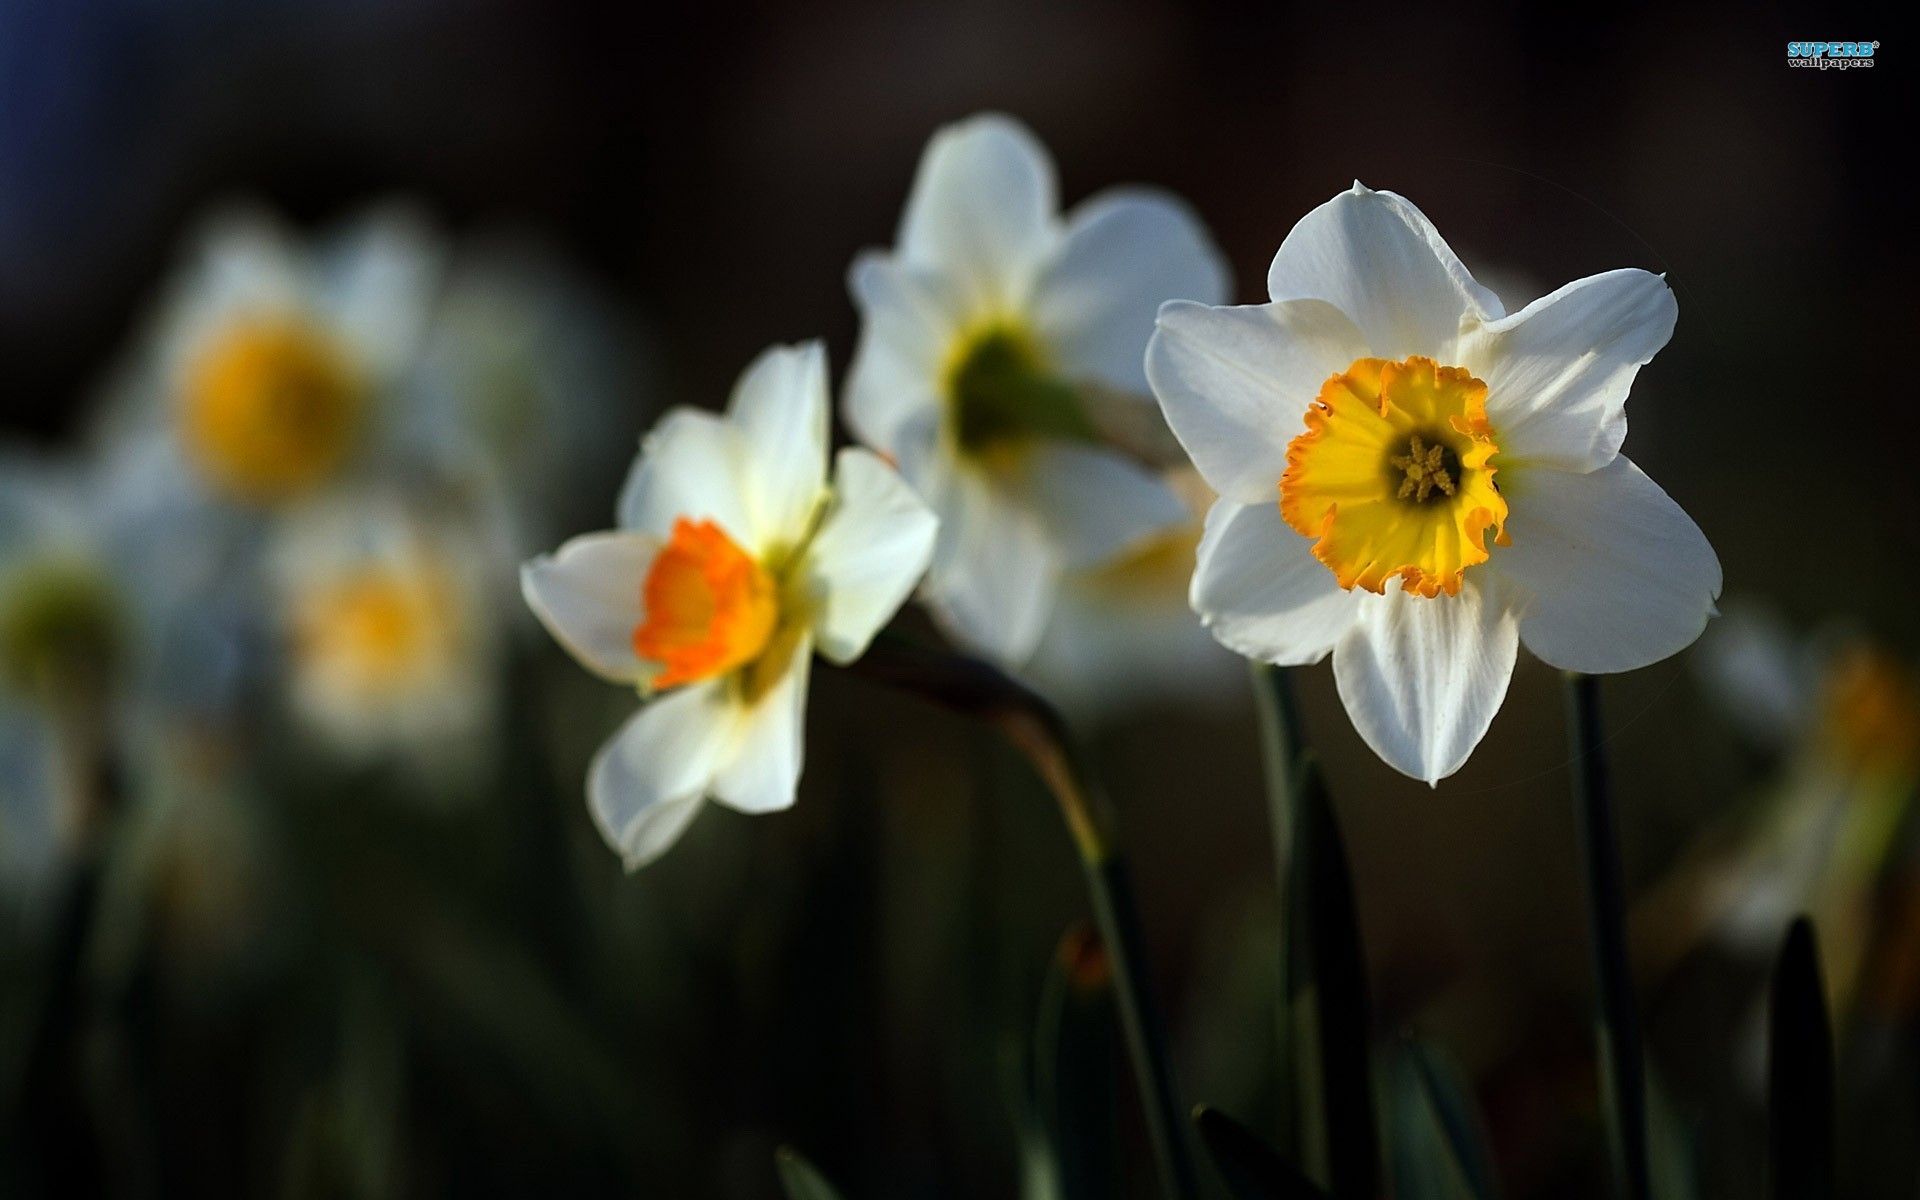 Daffodil | HQ Definition Wallpapers, Wallpapers